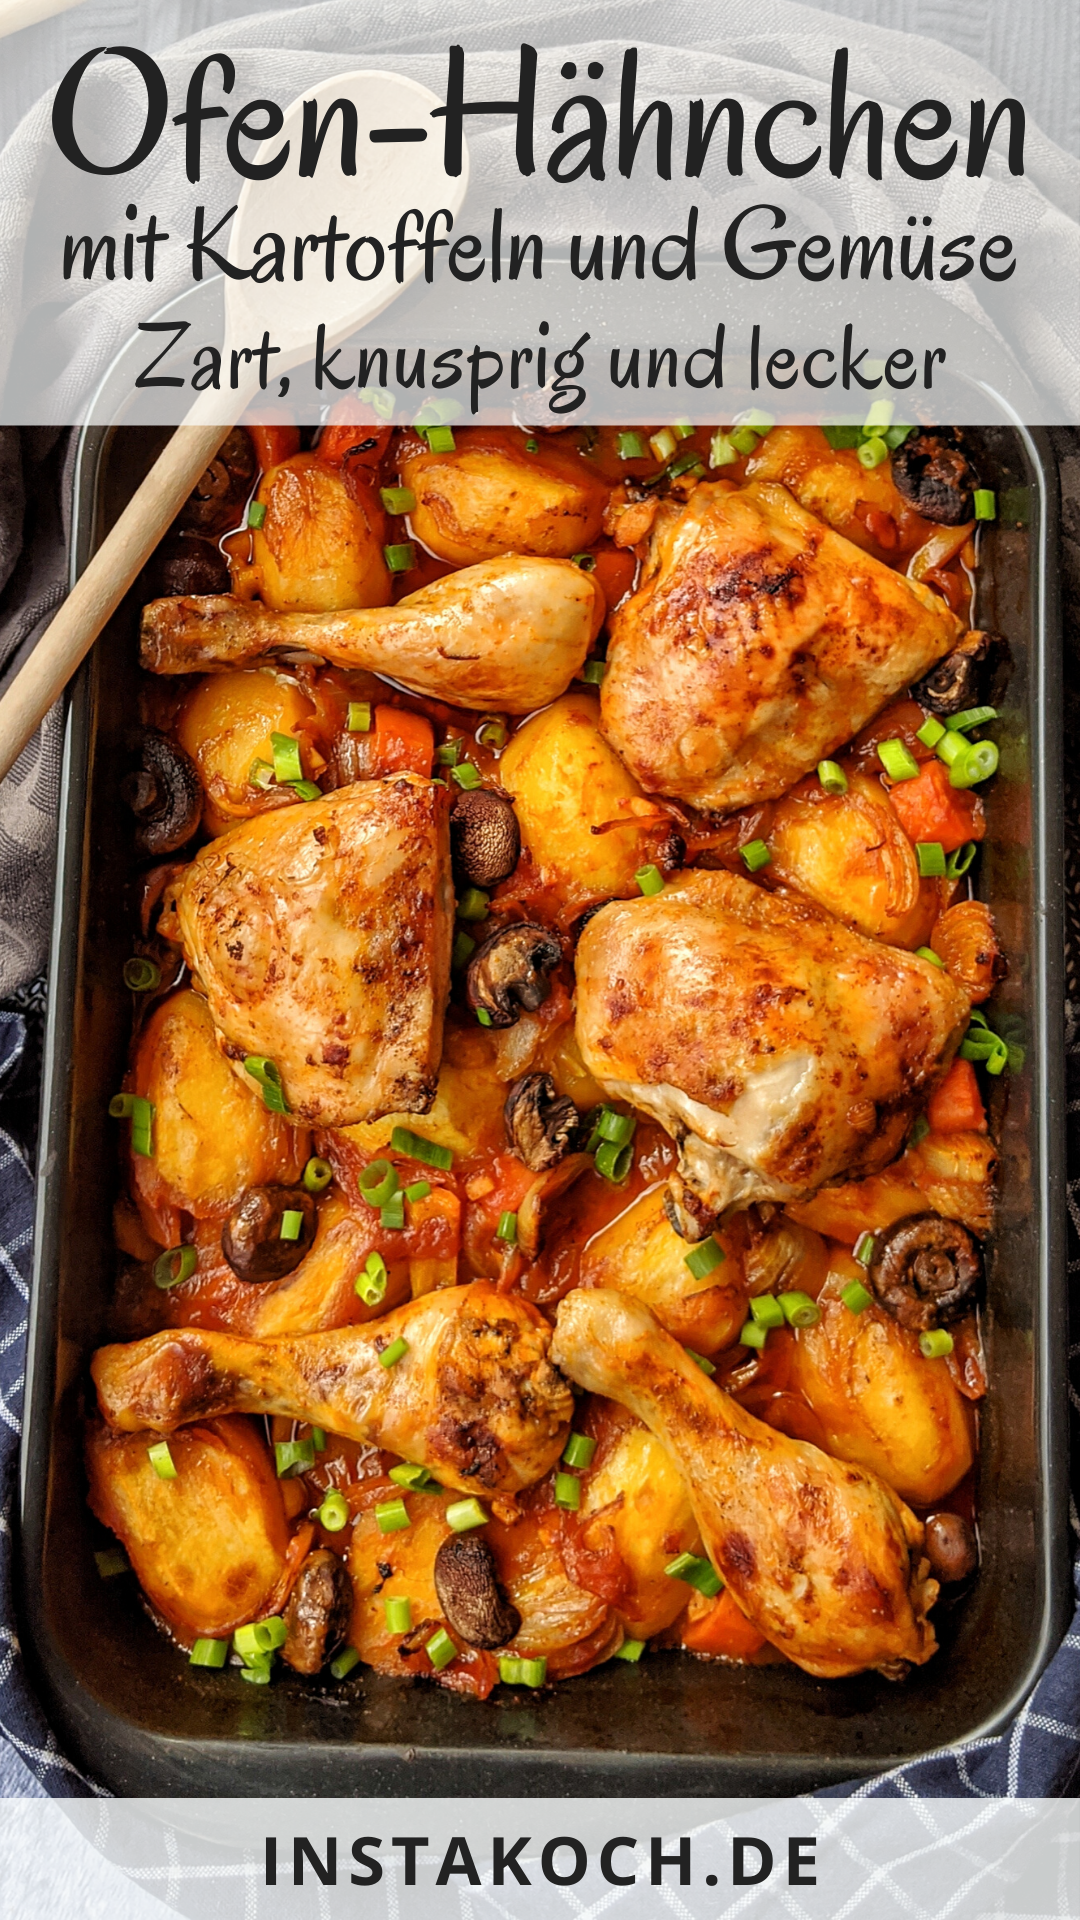 Photo of Oven-fried chicken with potatoes and vegetables in tomato sauce – click for a delicious recipe